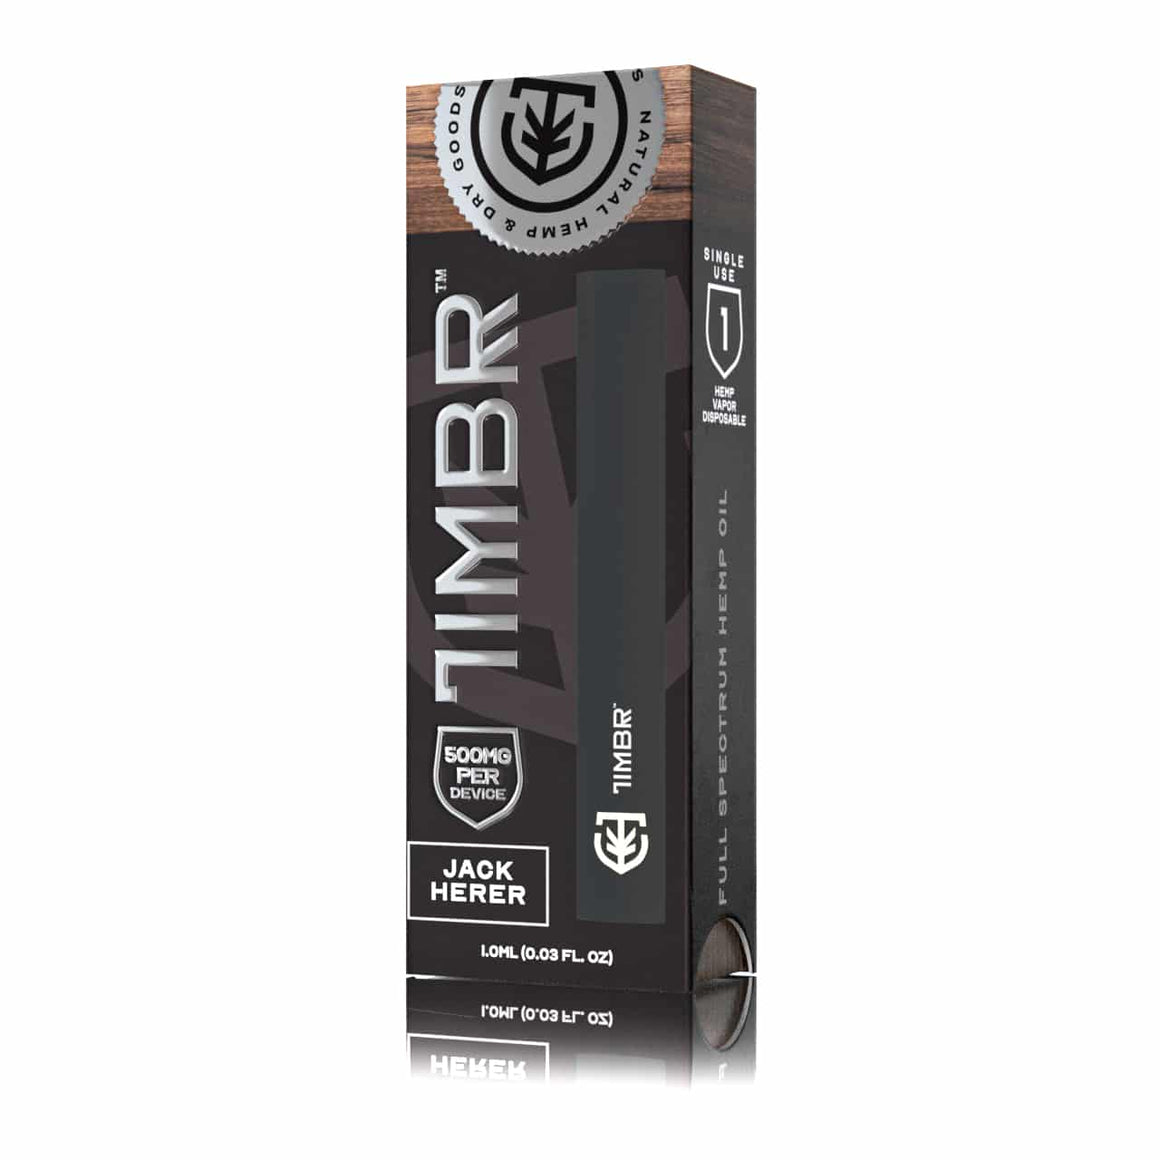 TIMBR Organics - Jack Herer CBD Disposable Vape Pen at Modest Hemp Co.